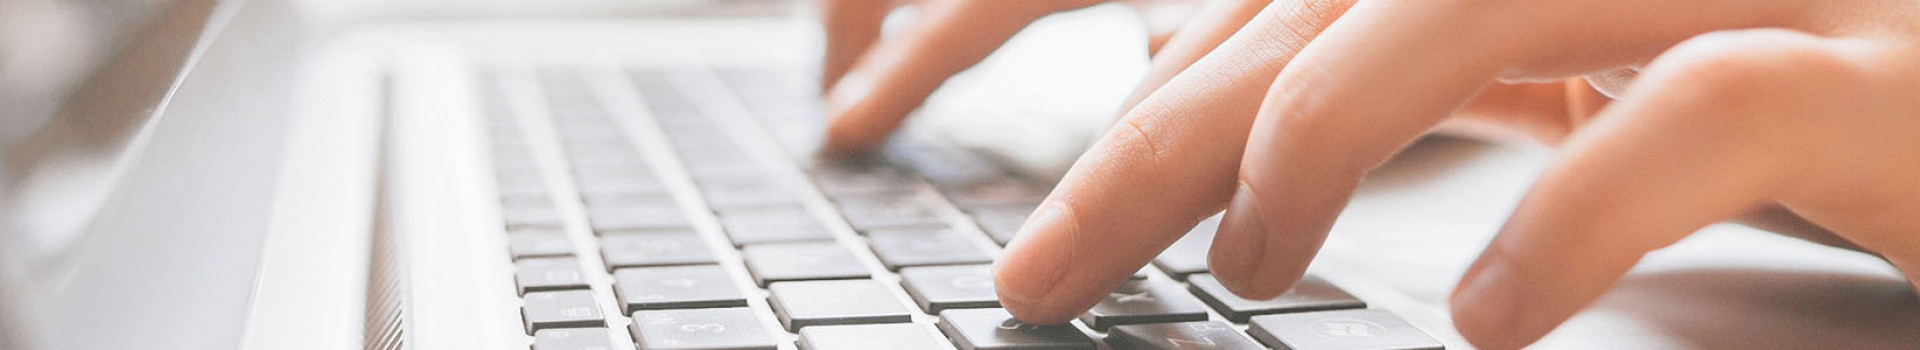 Hands typing on a laptop keyboard.